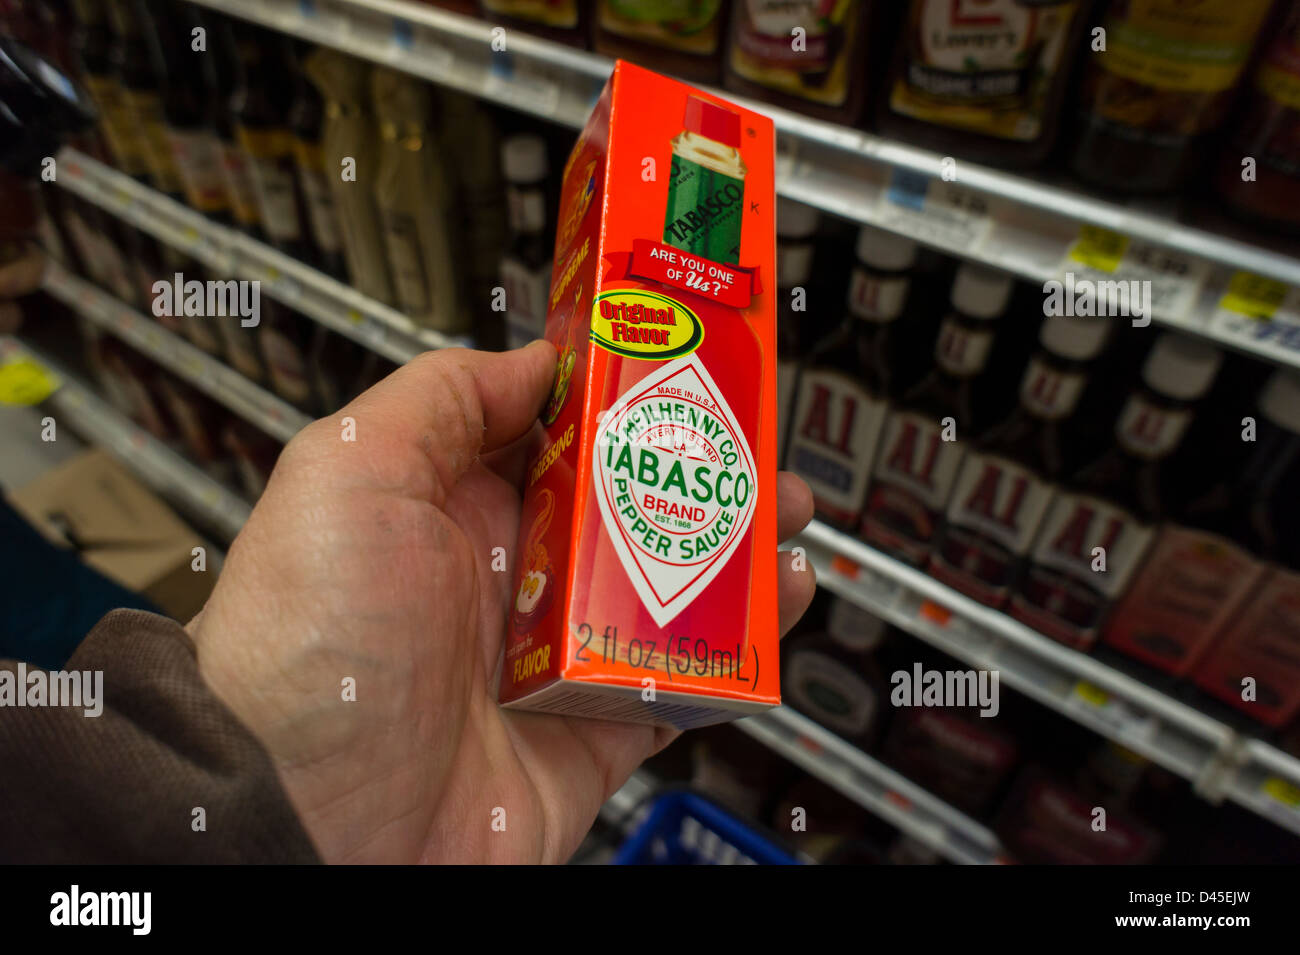 Bottle of McIlhenny Co. Tabasco brand pepper sauce is seen in a supermarket in New York - Stock Image